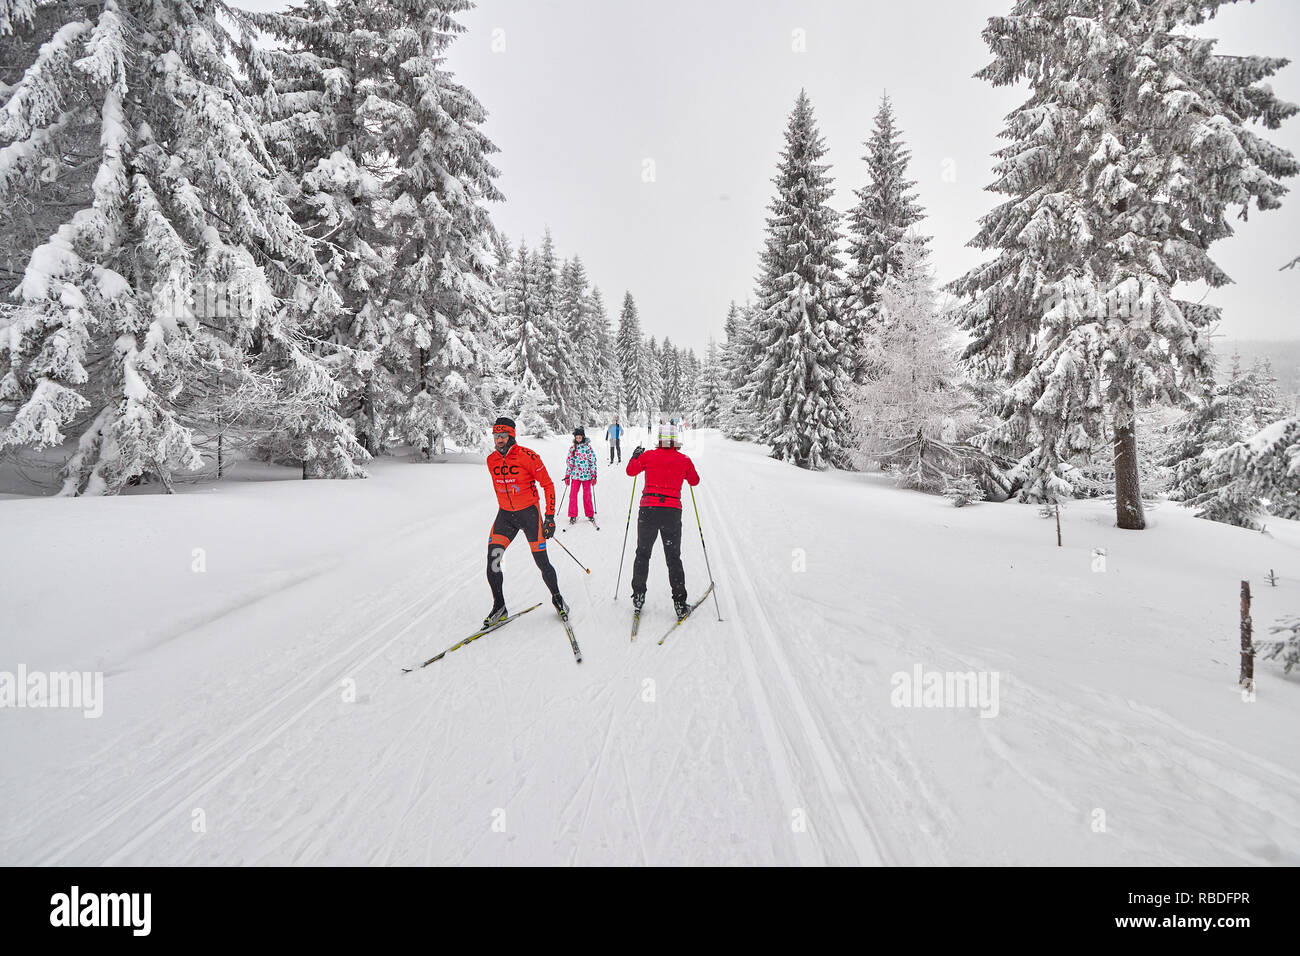 Jakuszyce, Poland - January 06, 2017: Cross-country skiers on trail after heavy snowfalls. For over 30 years Jakuszyce has been the host of the Piast  - Stock Image